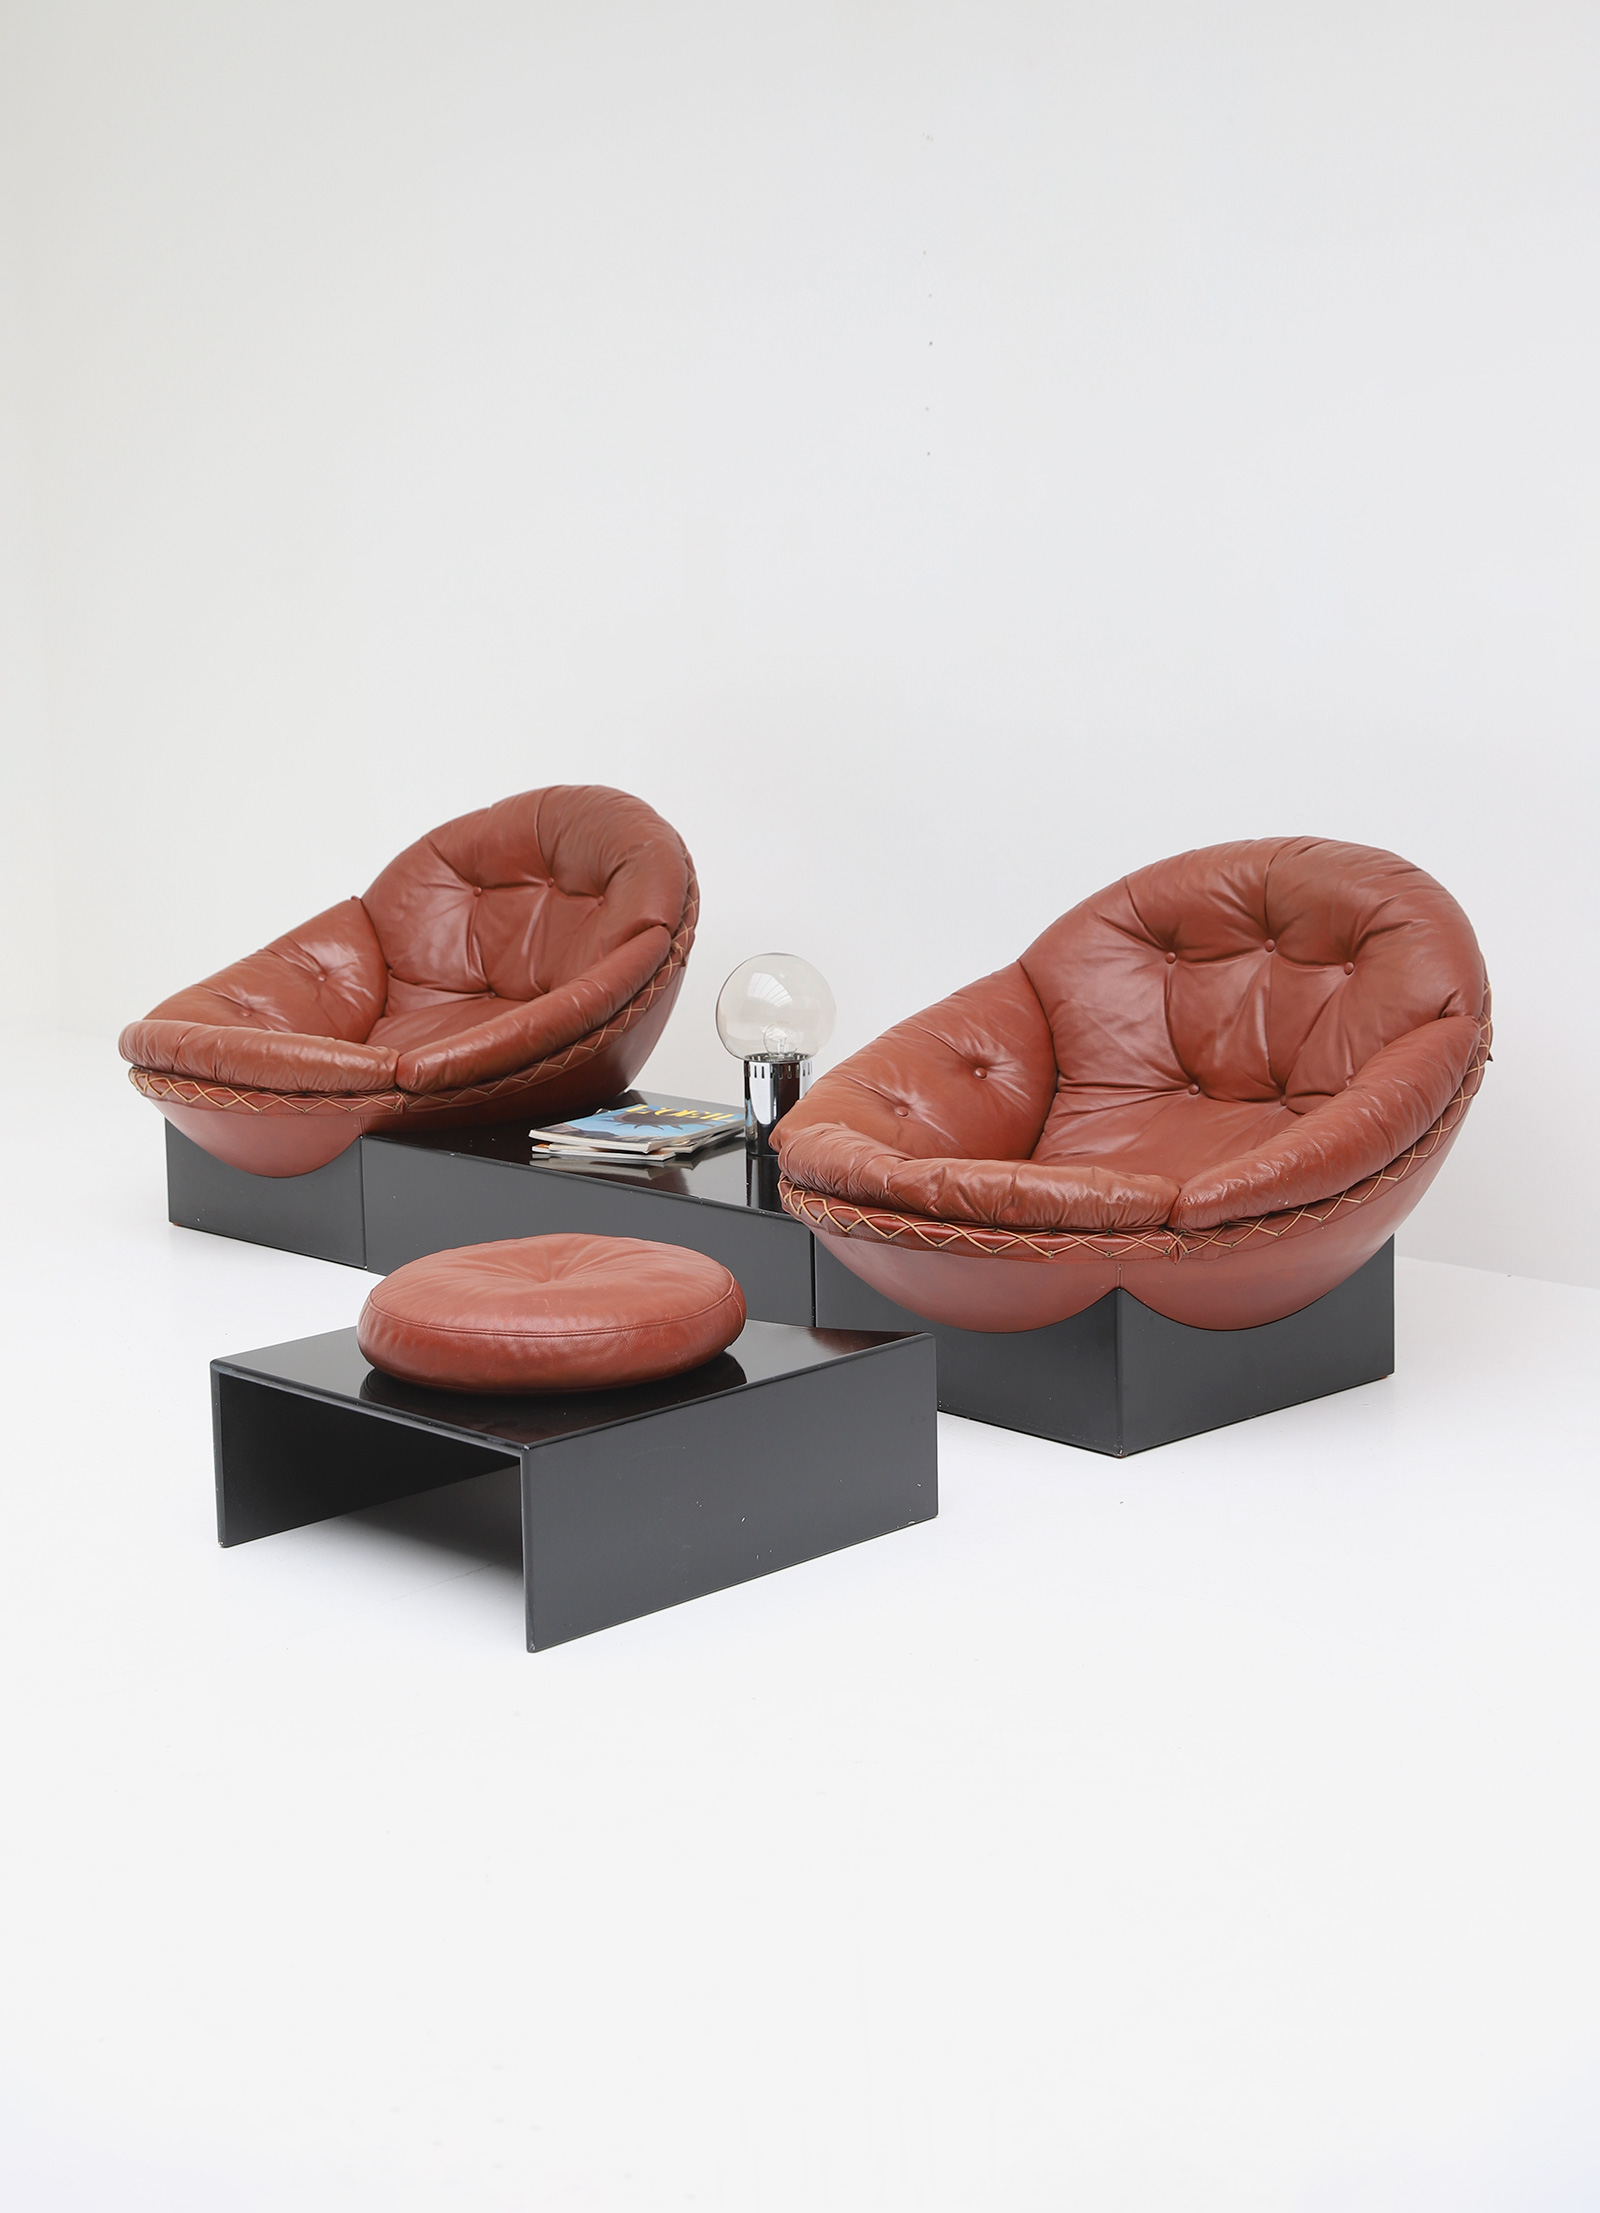 Leather Lounge Chairs by Illum Wikkelso for Ryesberg 1970simage 3